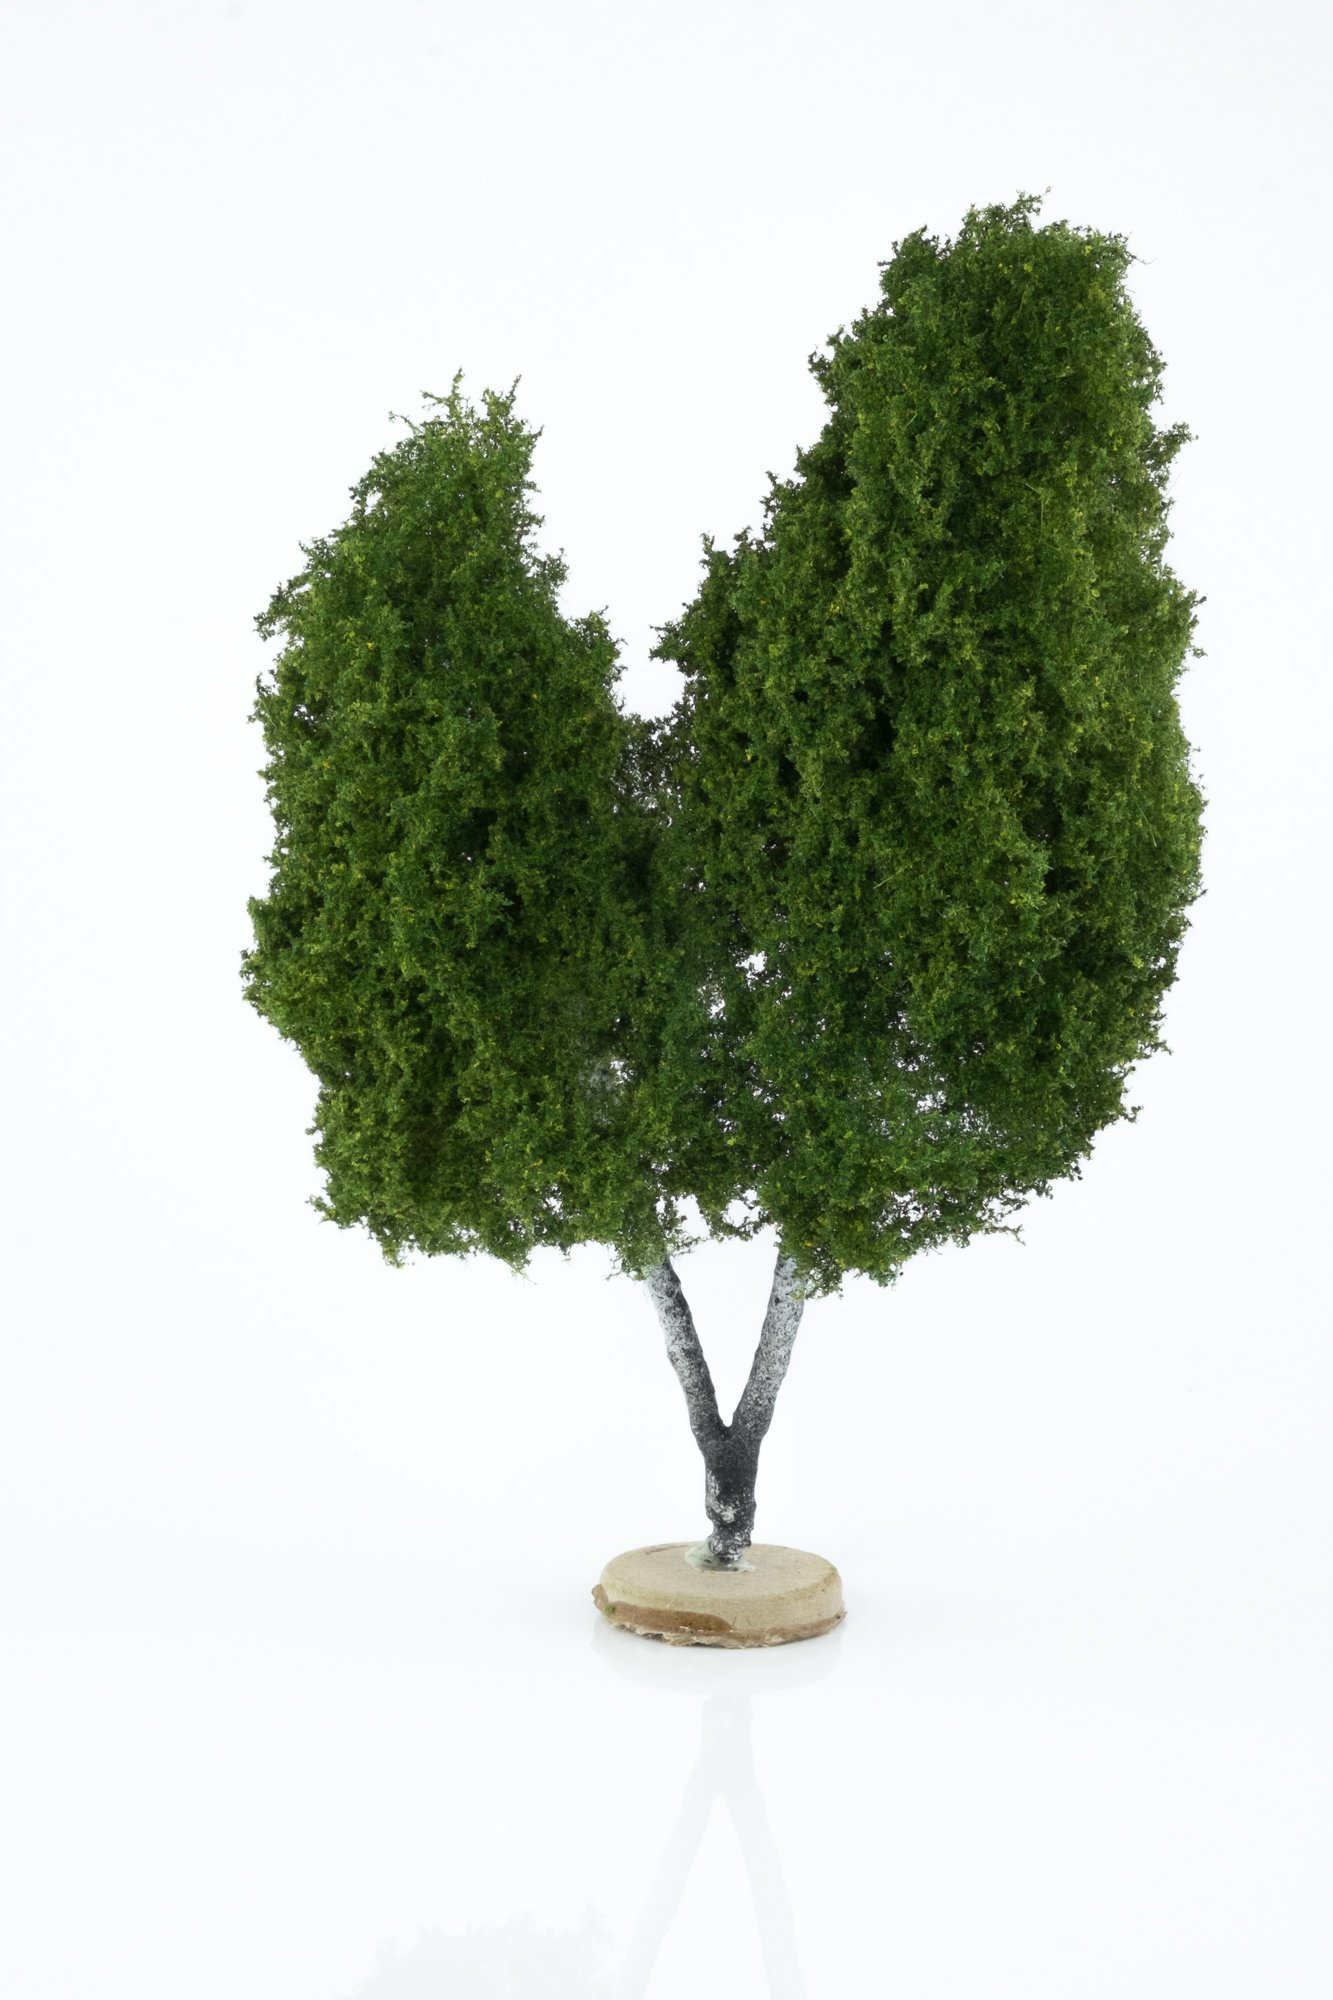 Hand-made, double, birch tree model. Size between 14 and 16 cm. Made from high quality model supplies by Primo Models.